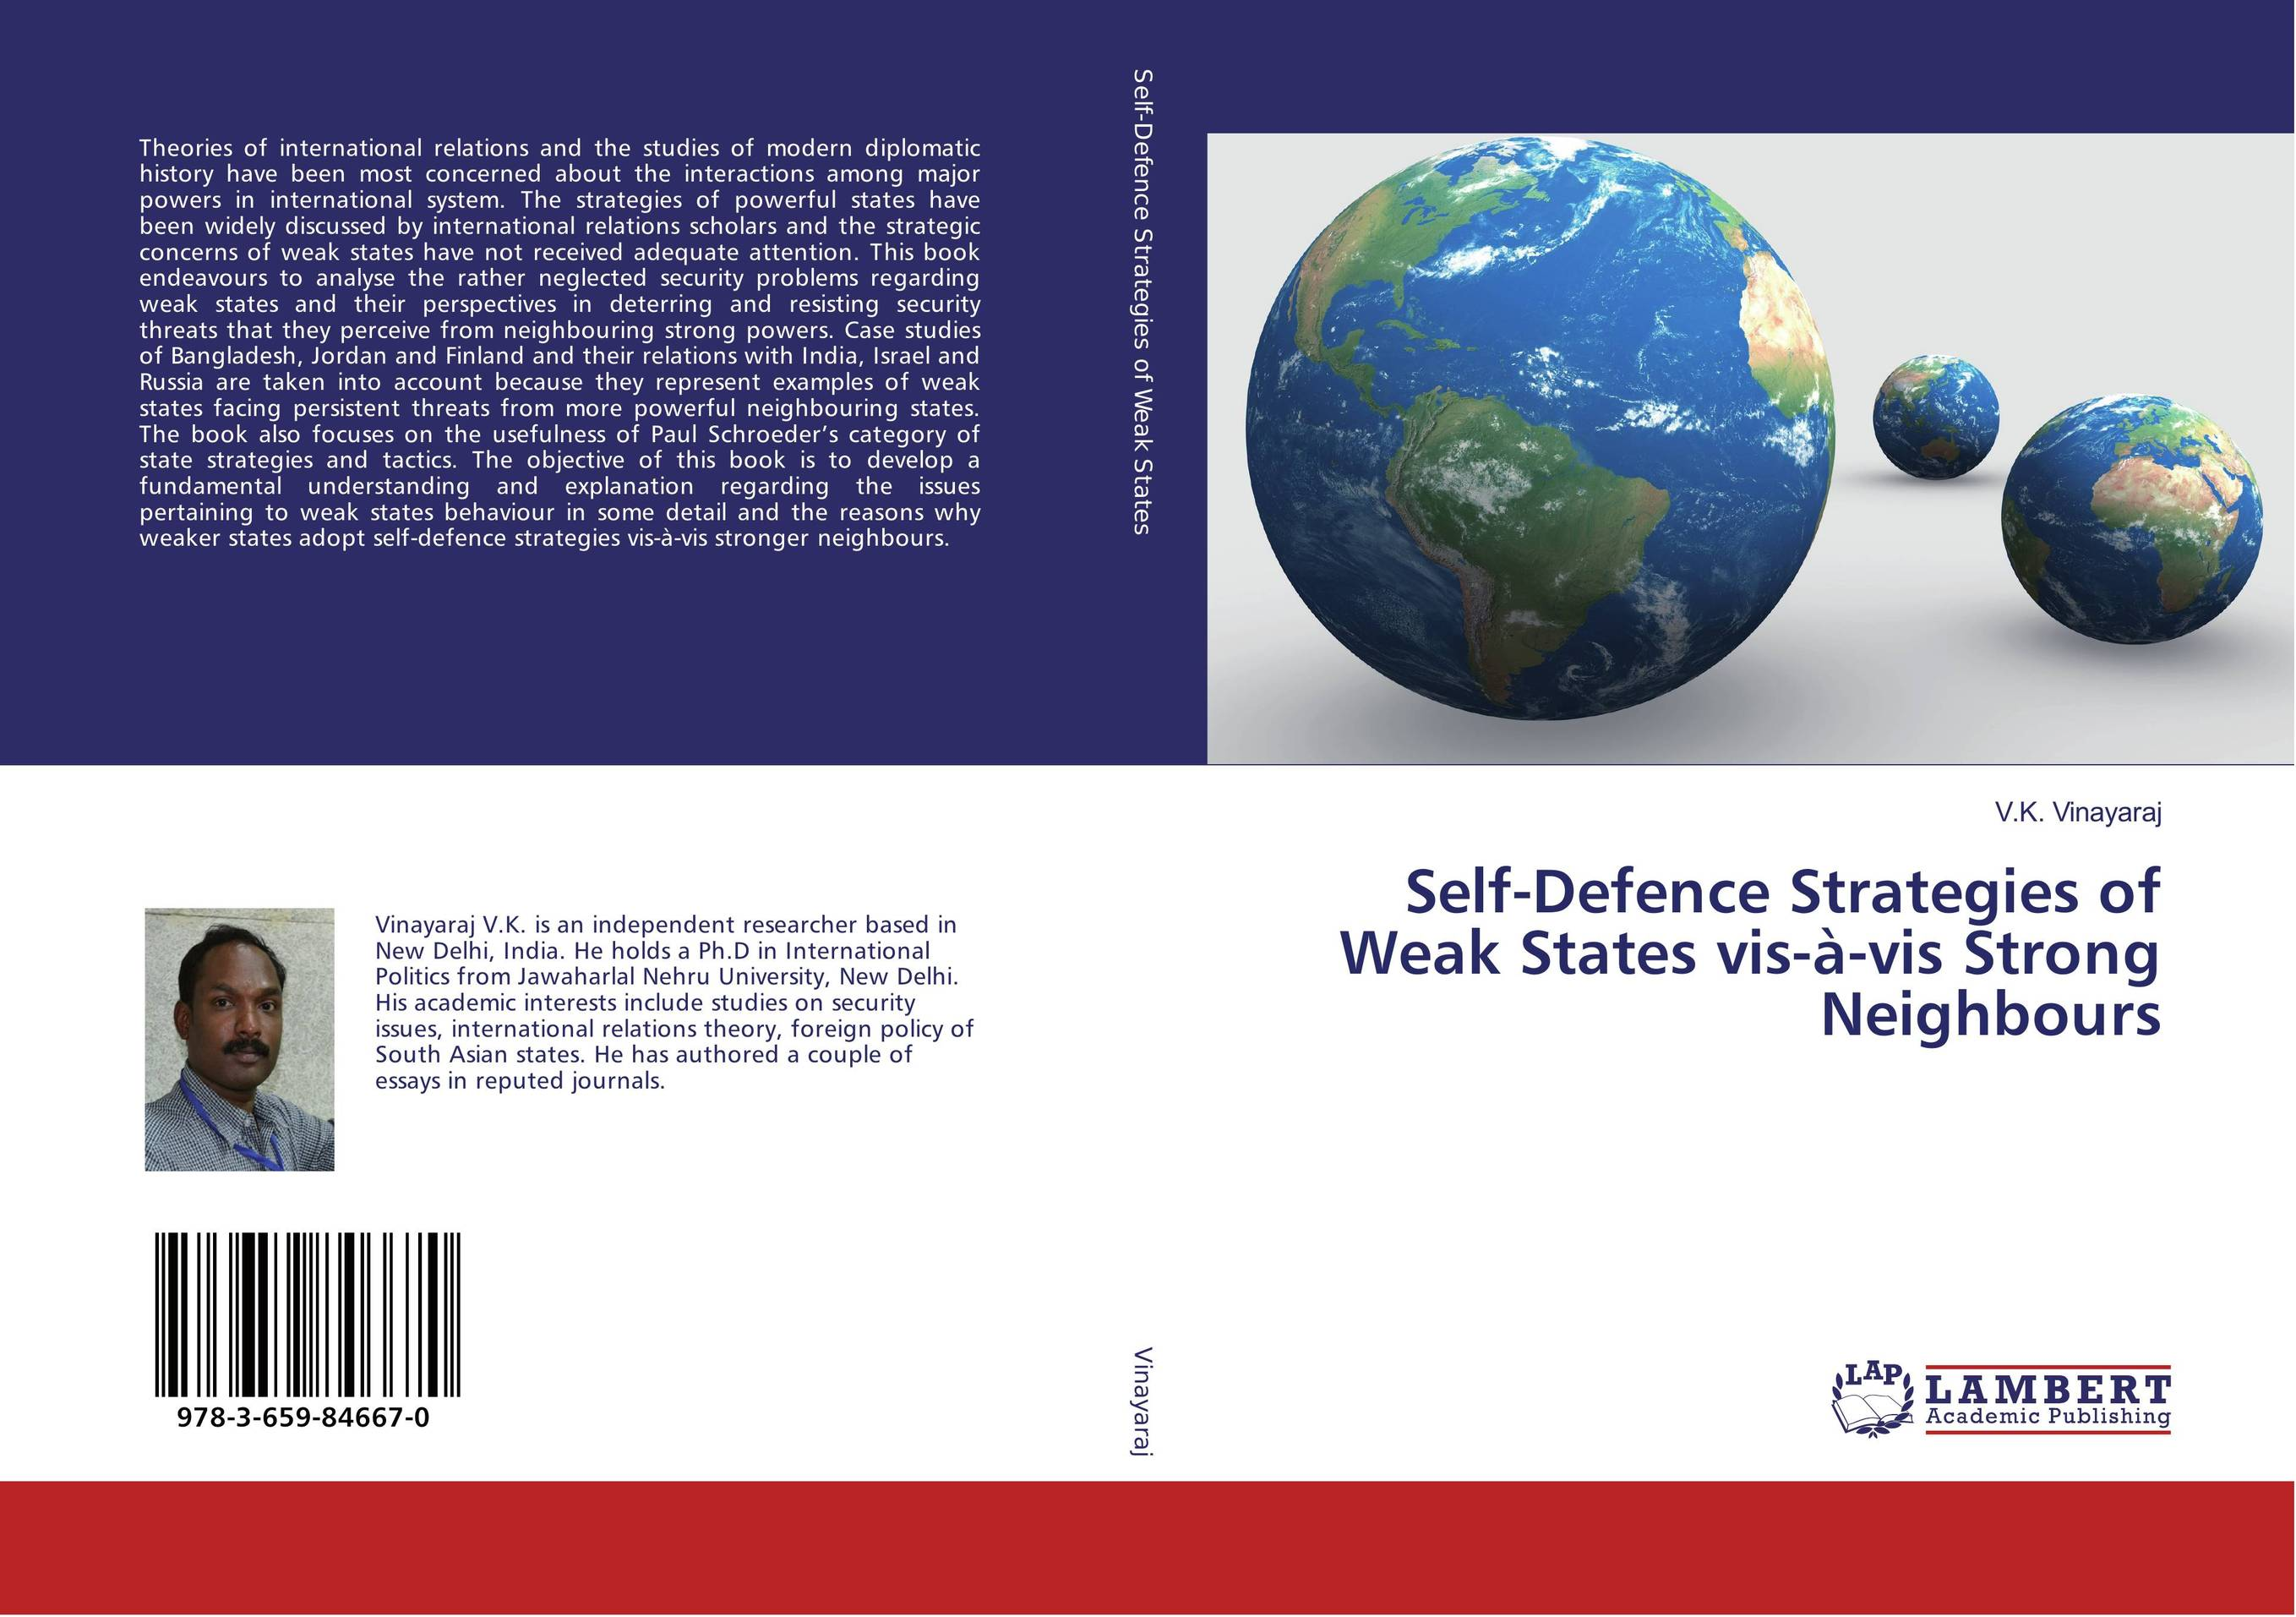 Self-Defence Strategies of Weak States vis-a-vis Strong Neighbours